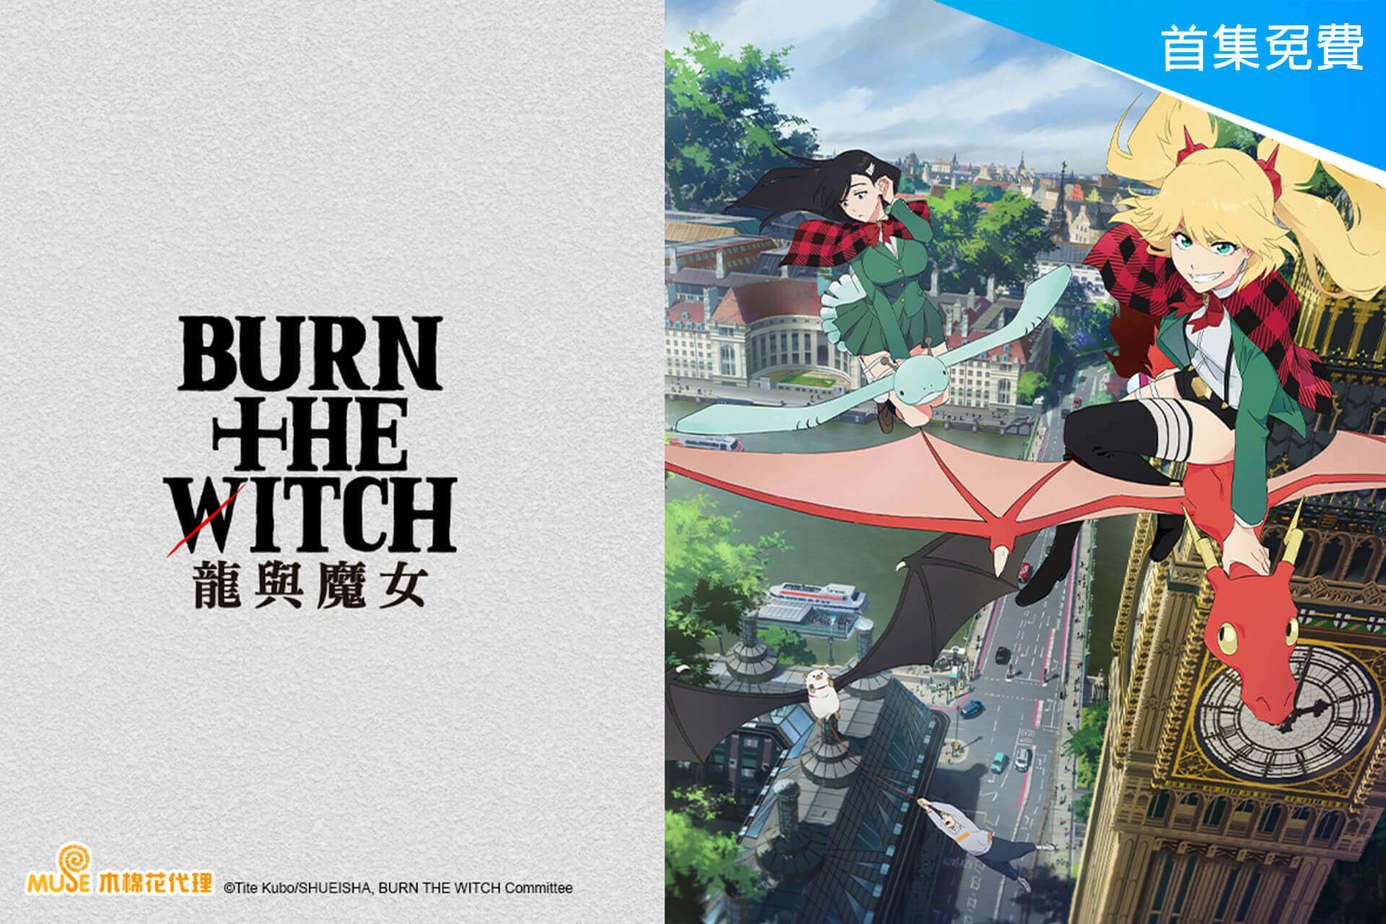 BURN THE WITCH 龍與魔女